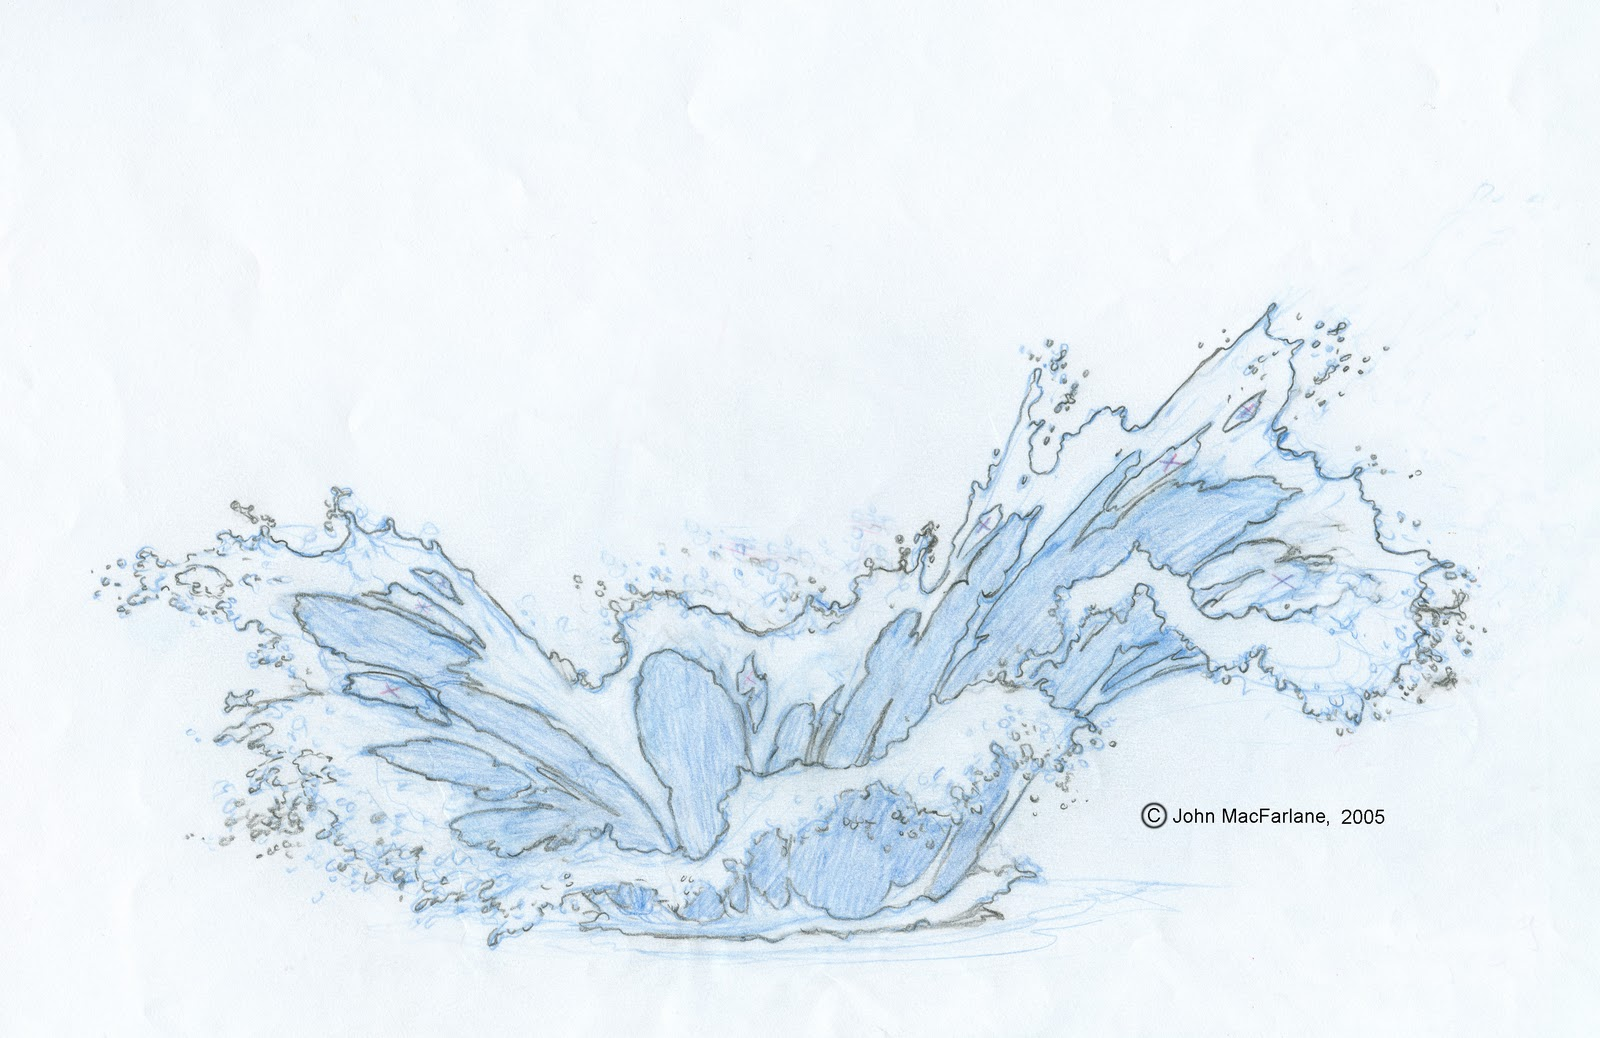 1600x1038 Water Splash By John Macfarlane Effects 2d